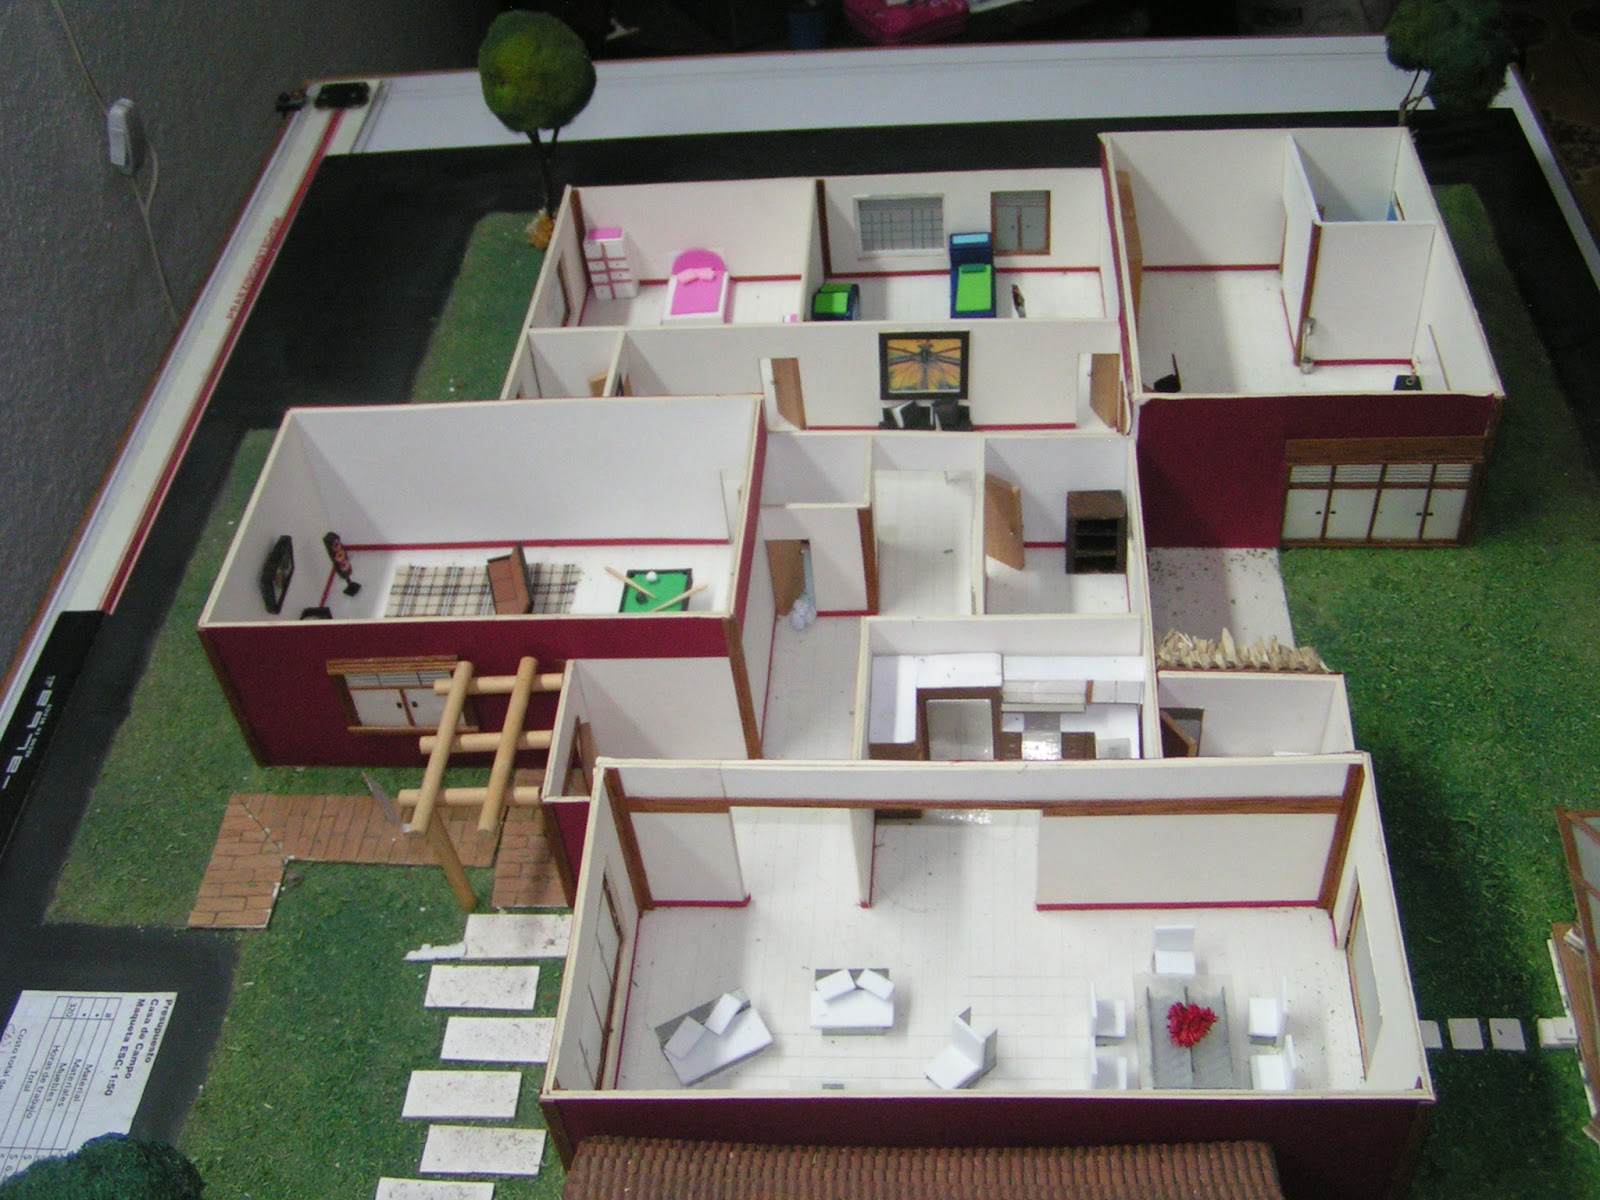 Maquetas de casas pictures to pin on pinterest tattooskid - Maqueta casa up ...